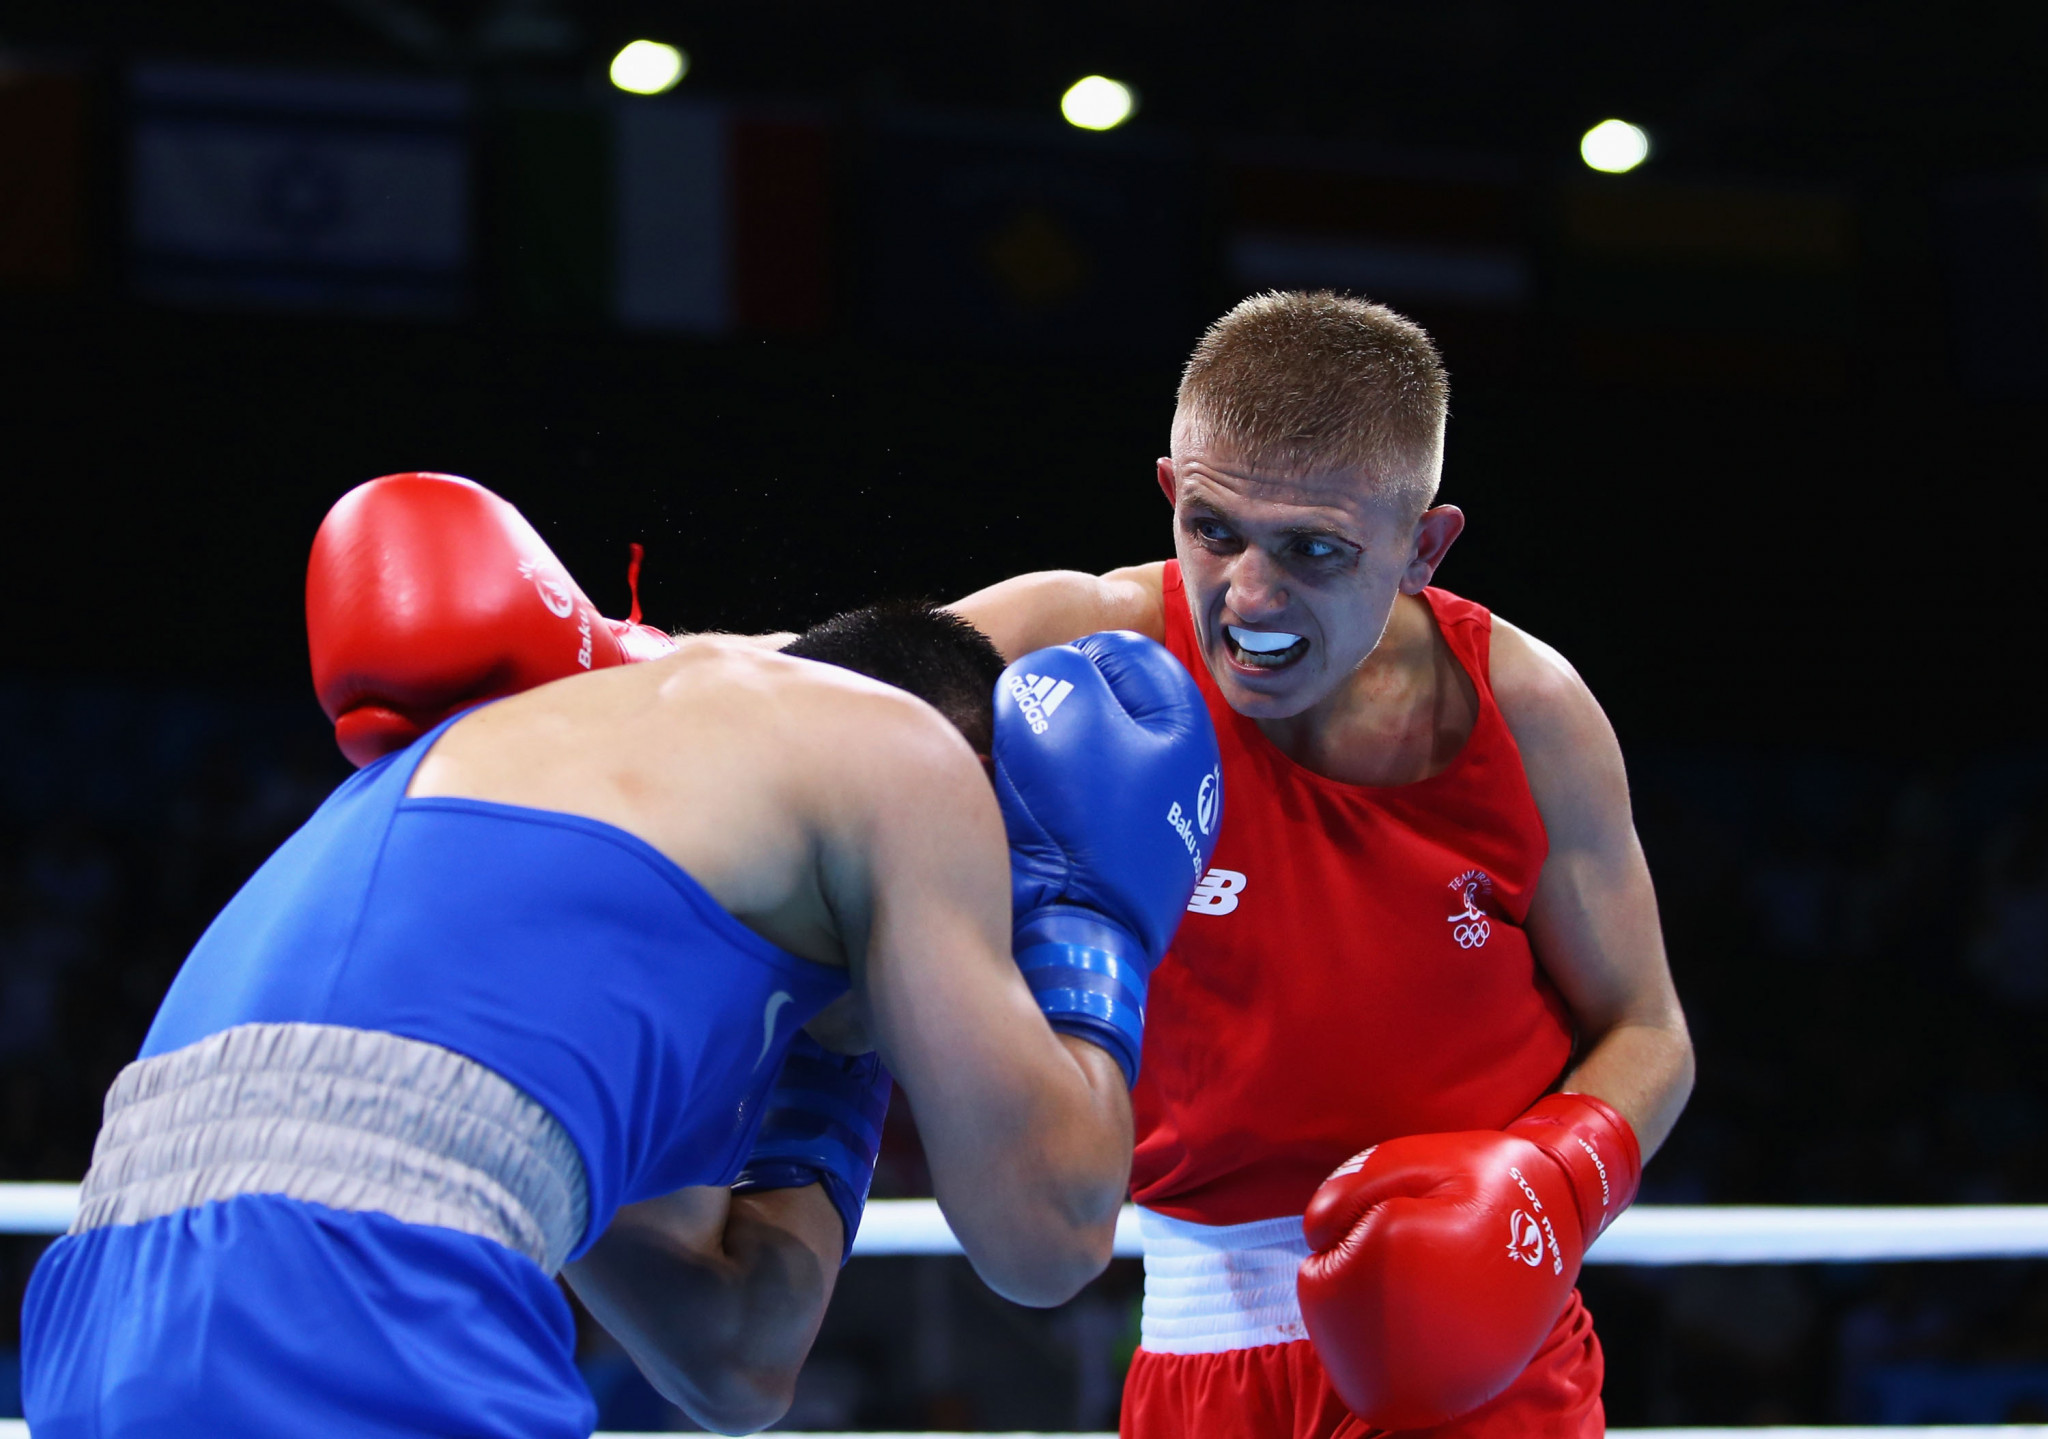 Ireland's Kurt Walker won his opening bout of the AIBA World Championships ©Getty Images